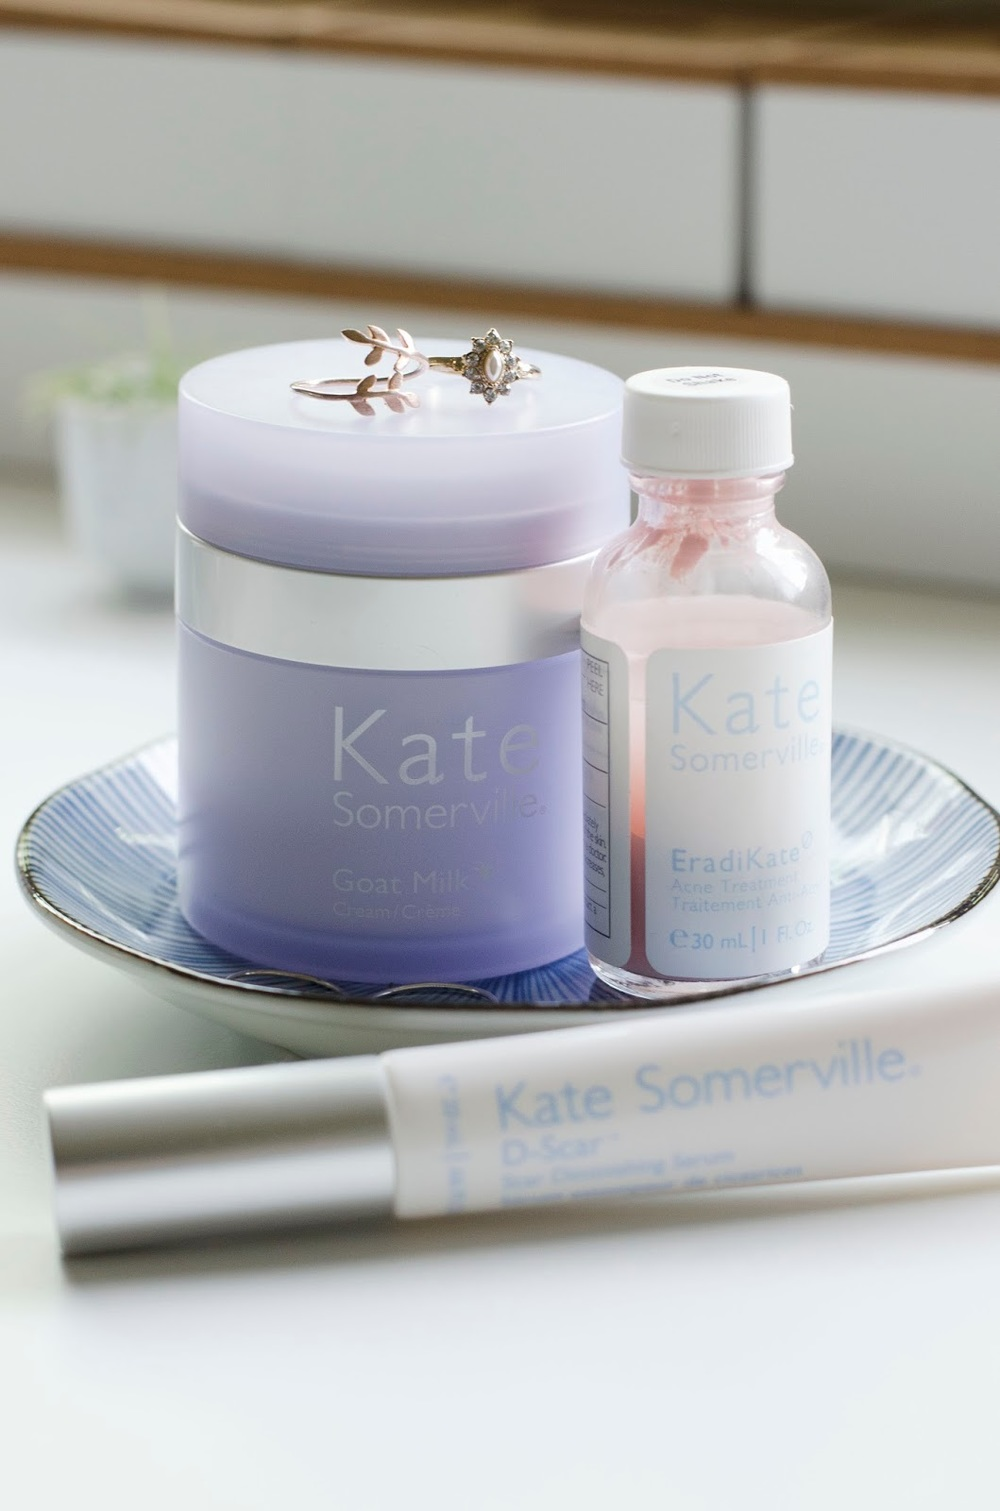 Kate Somerville, Kate Somerville Goat Milk Cream, Eradikate, D-Scar Diminishing Serum